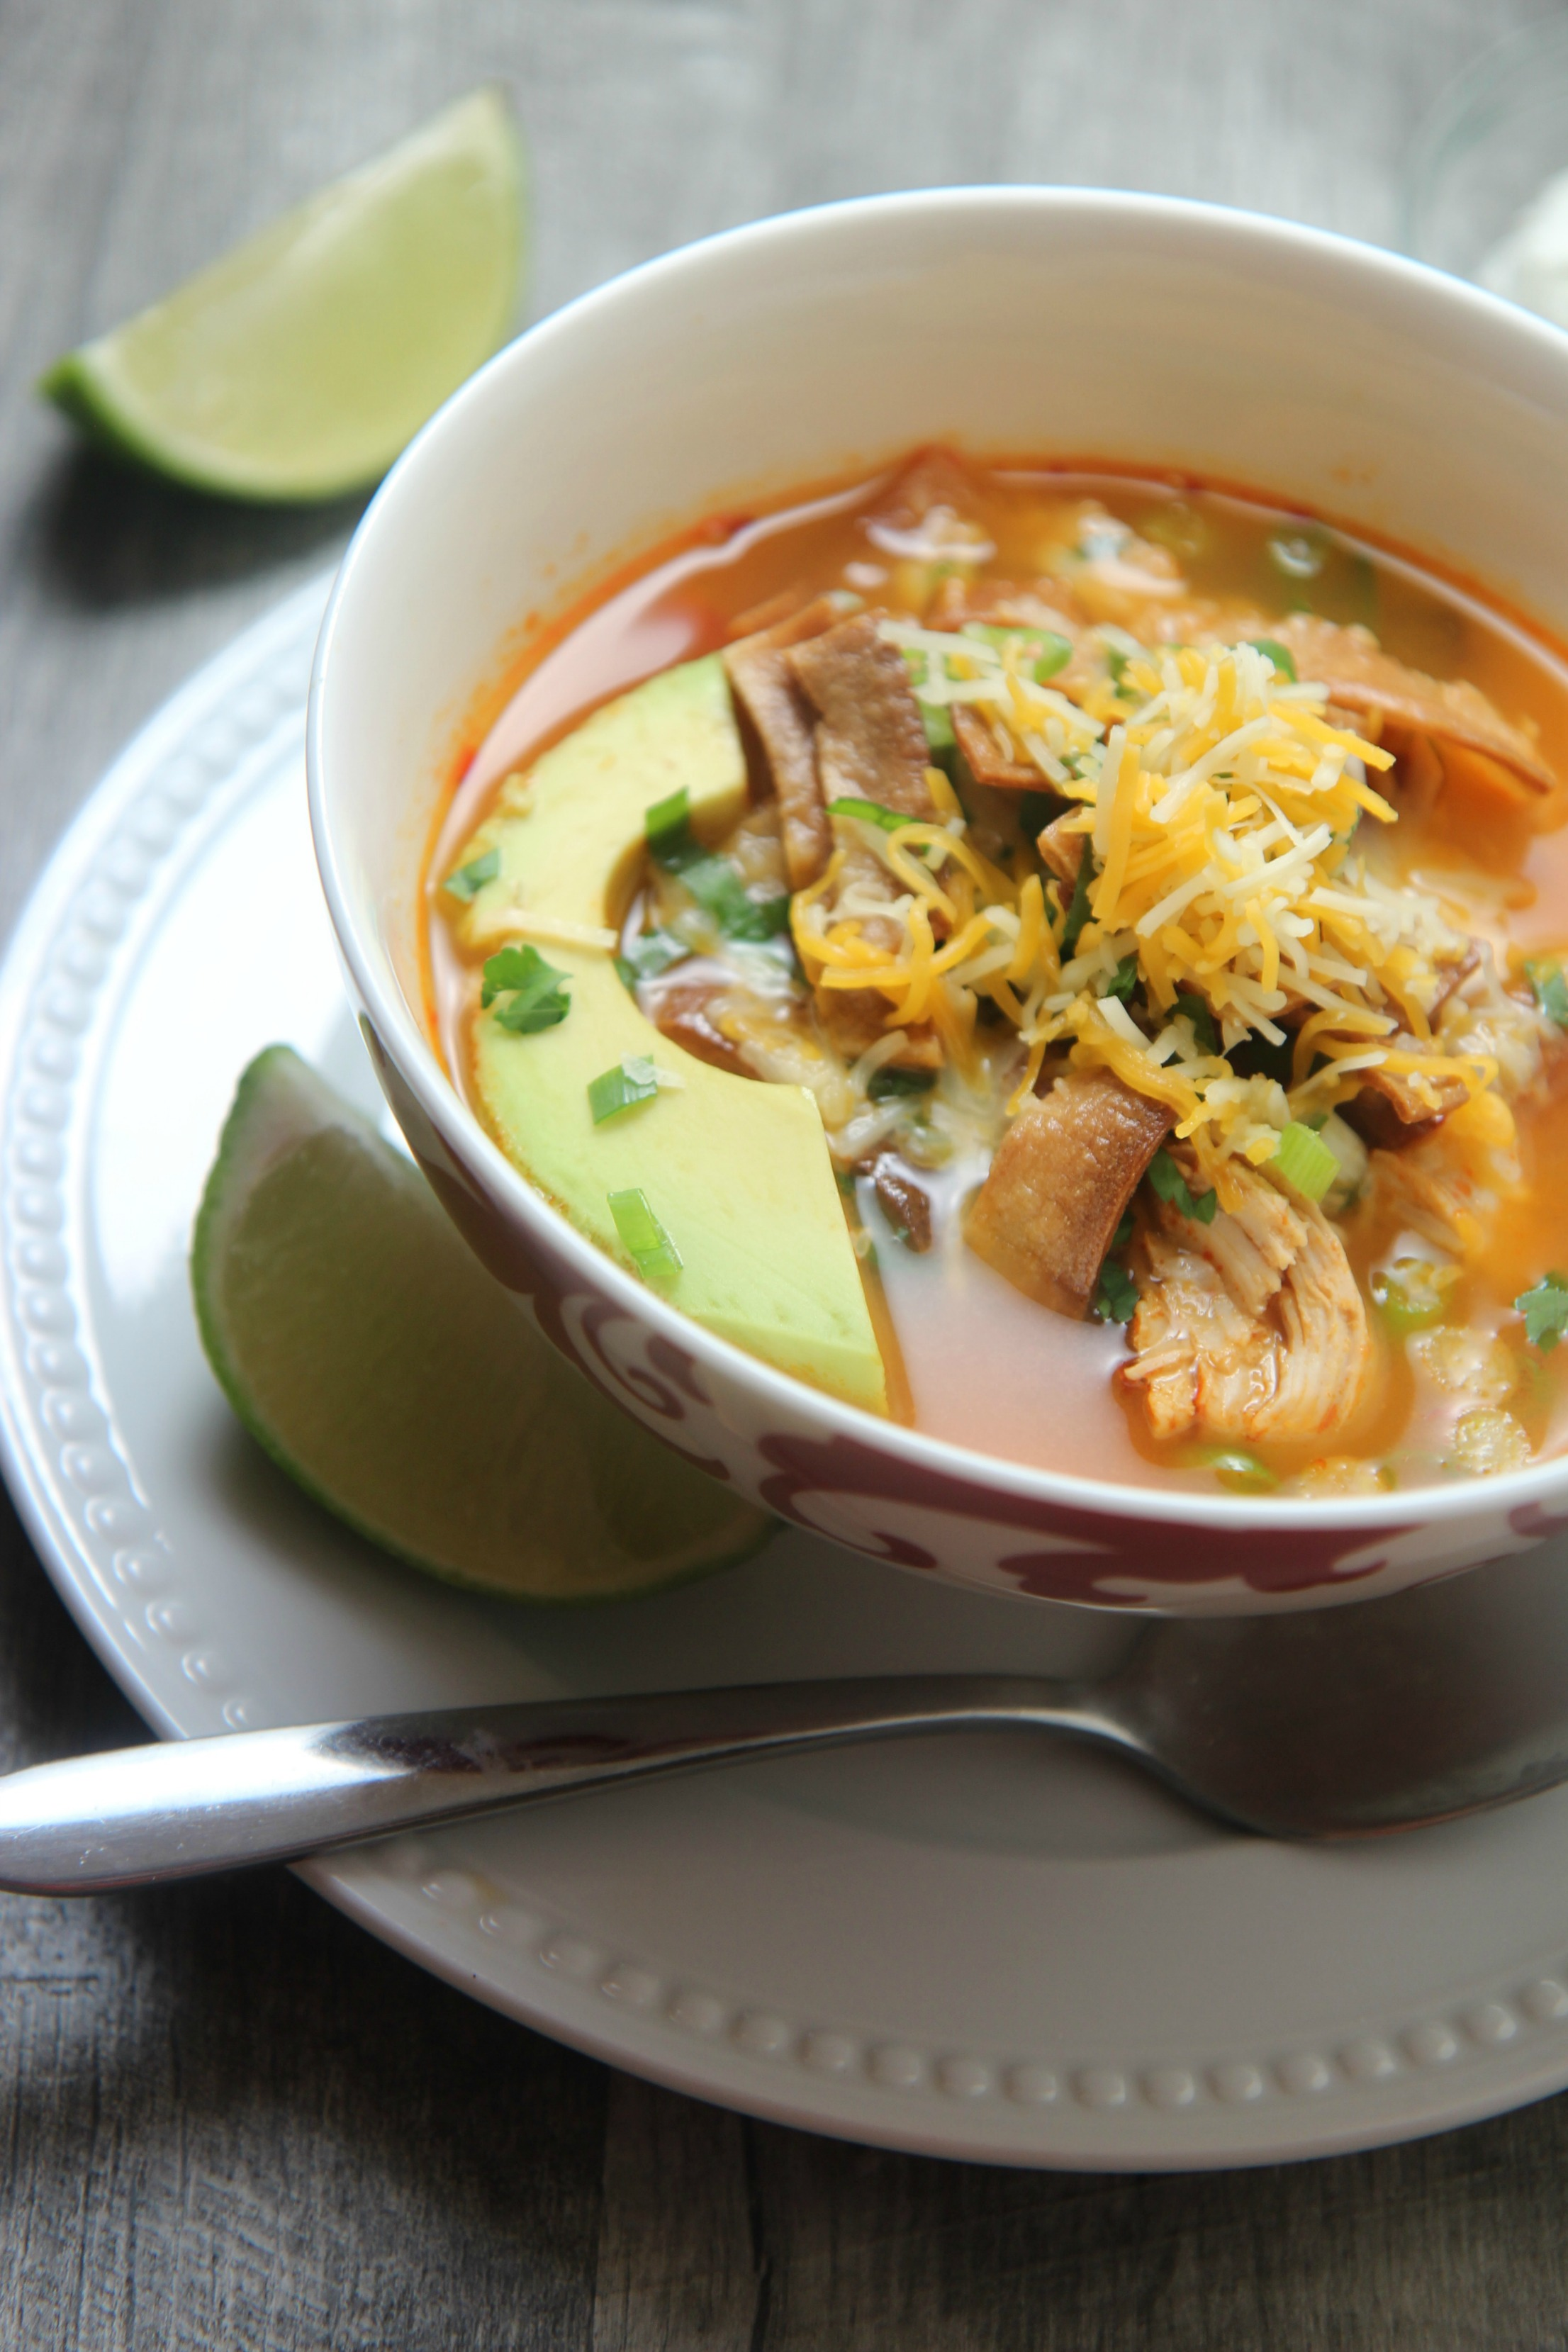 This spicy chicken tortilla soup is perfect for a cold winter day when you just want to stay at home